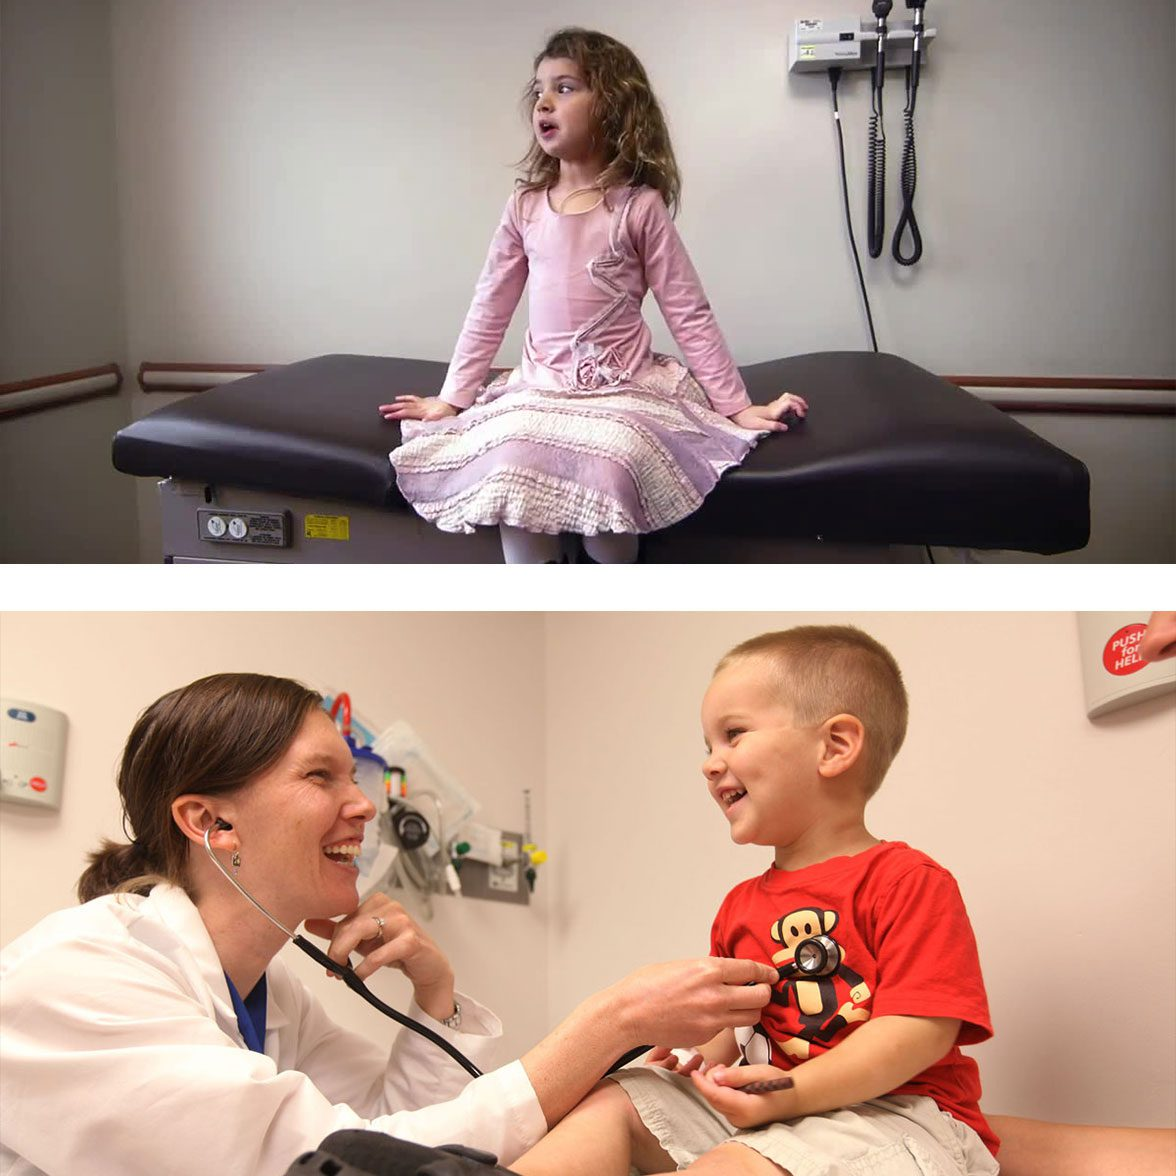 Children getting treated by a doctor